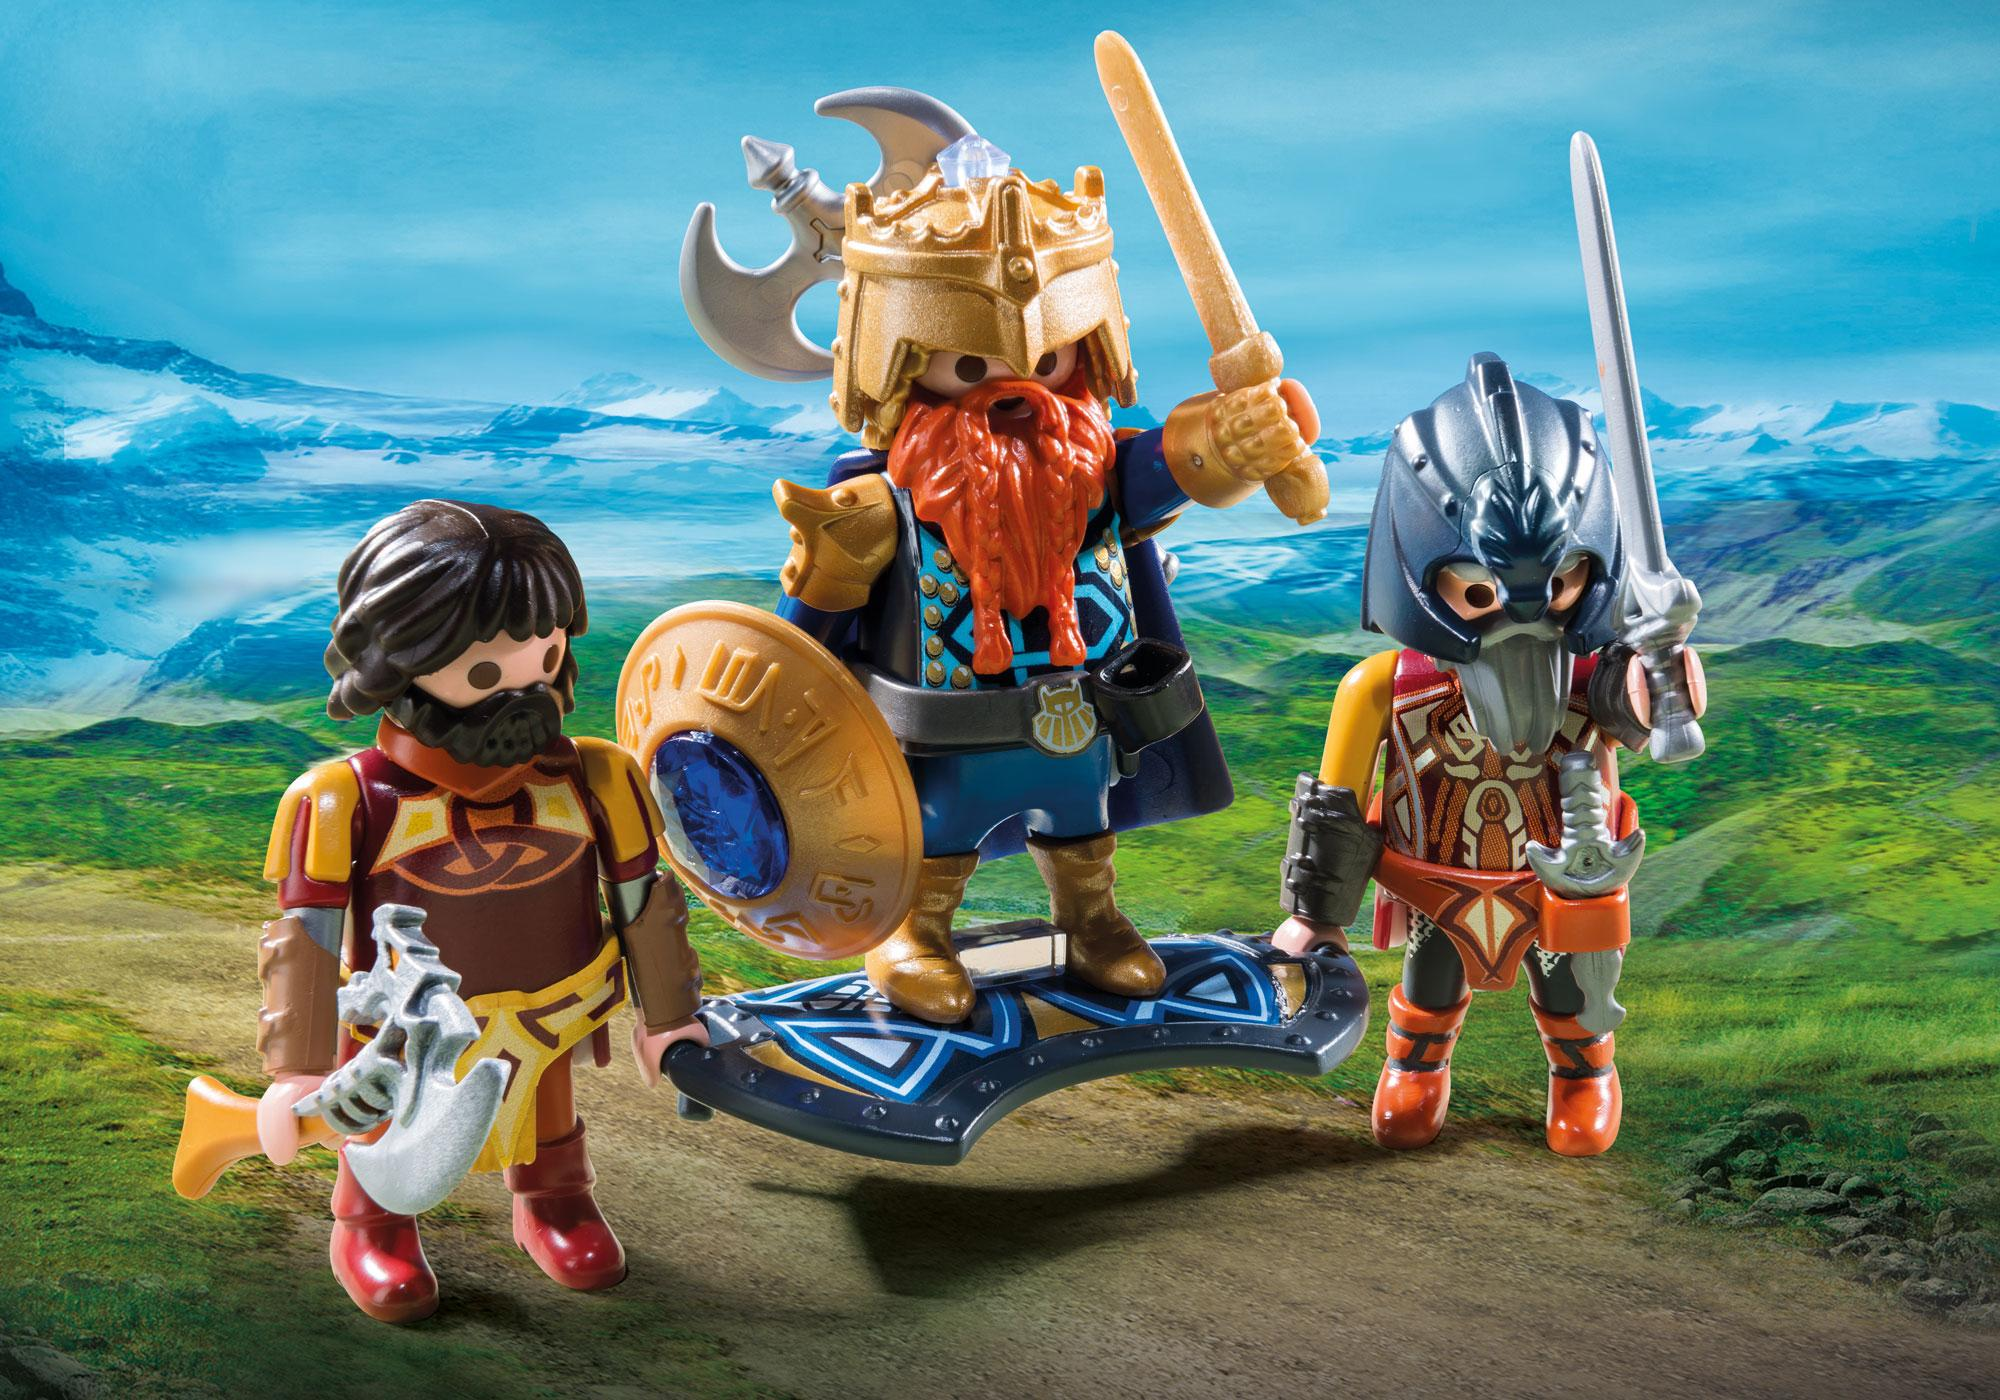 http://media.playmobil.com/i/playmobil/9344_product_extra1/Dwarf King with Guards